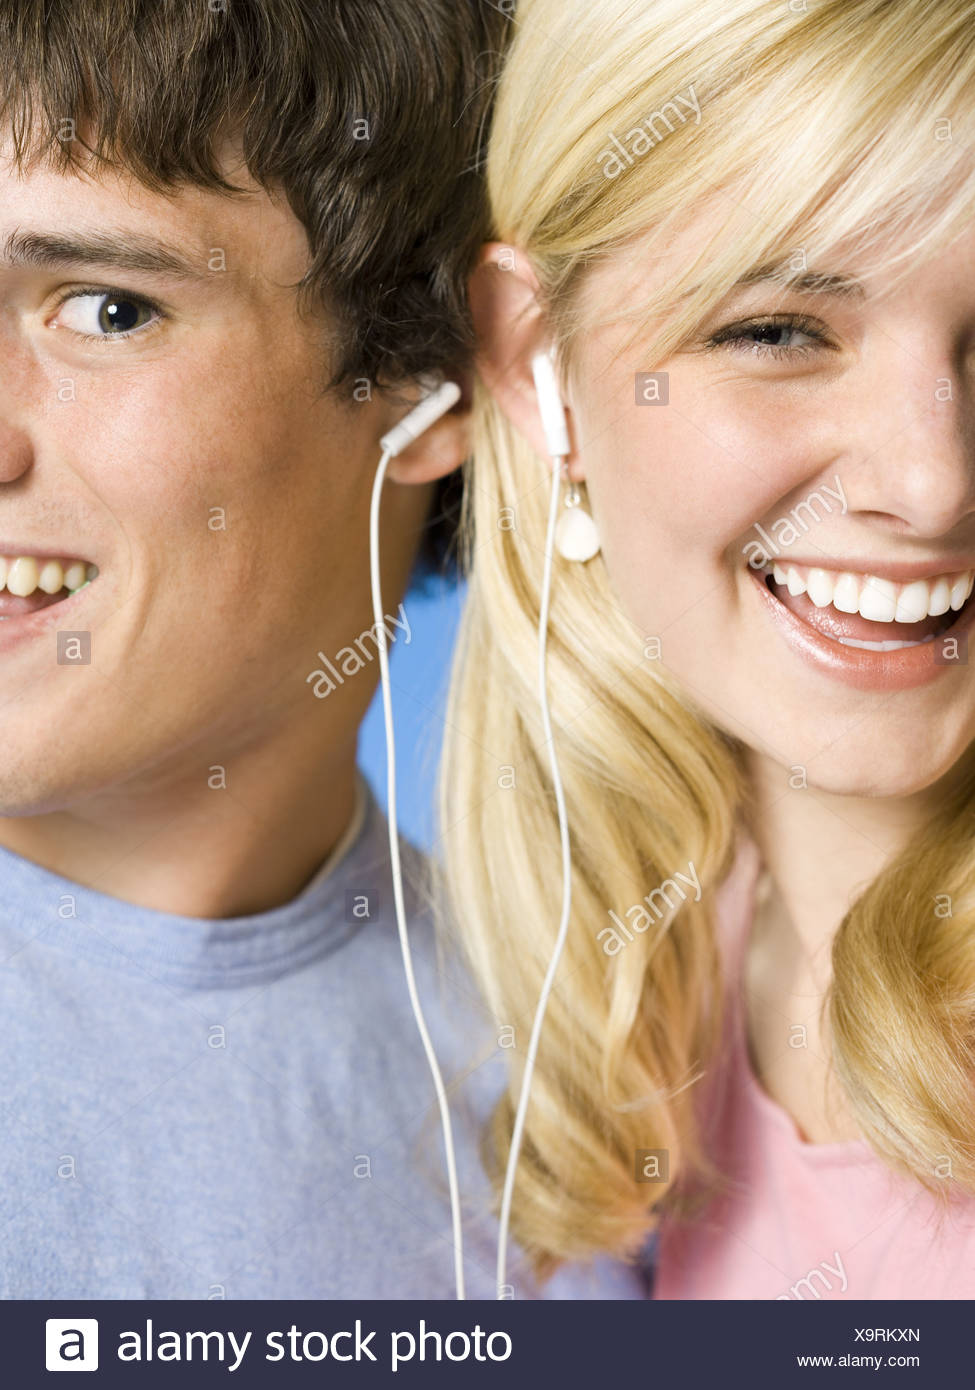 Portrait of a young couple with ear buds smiling - Stock Image